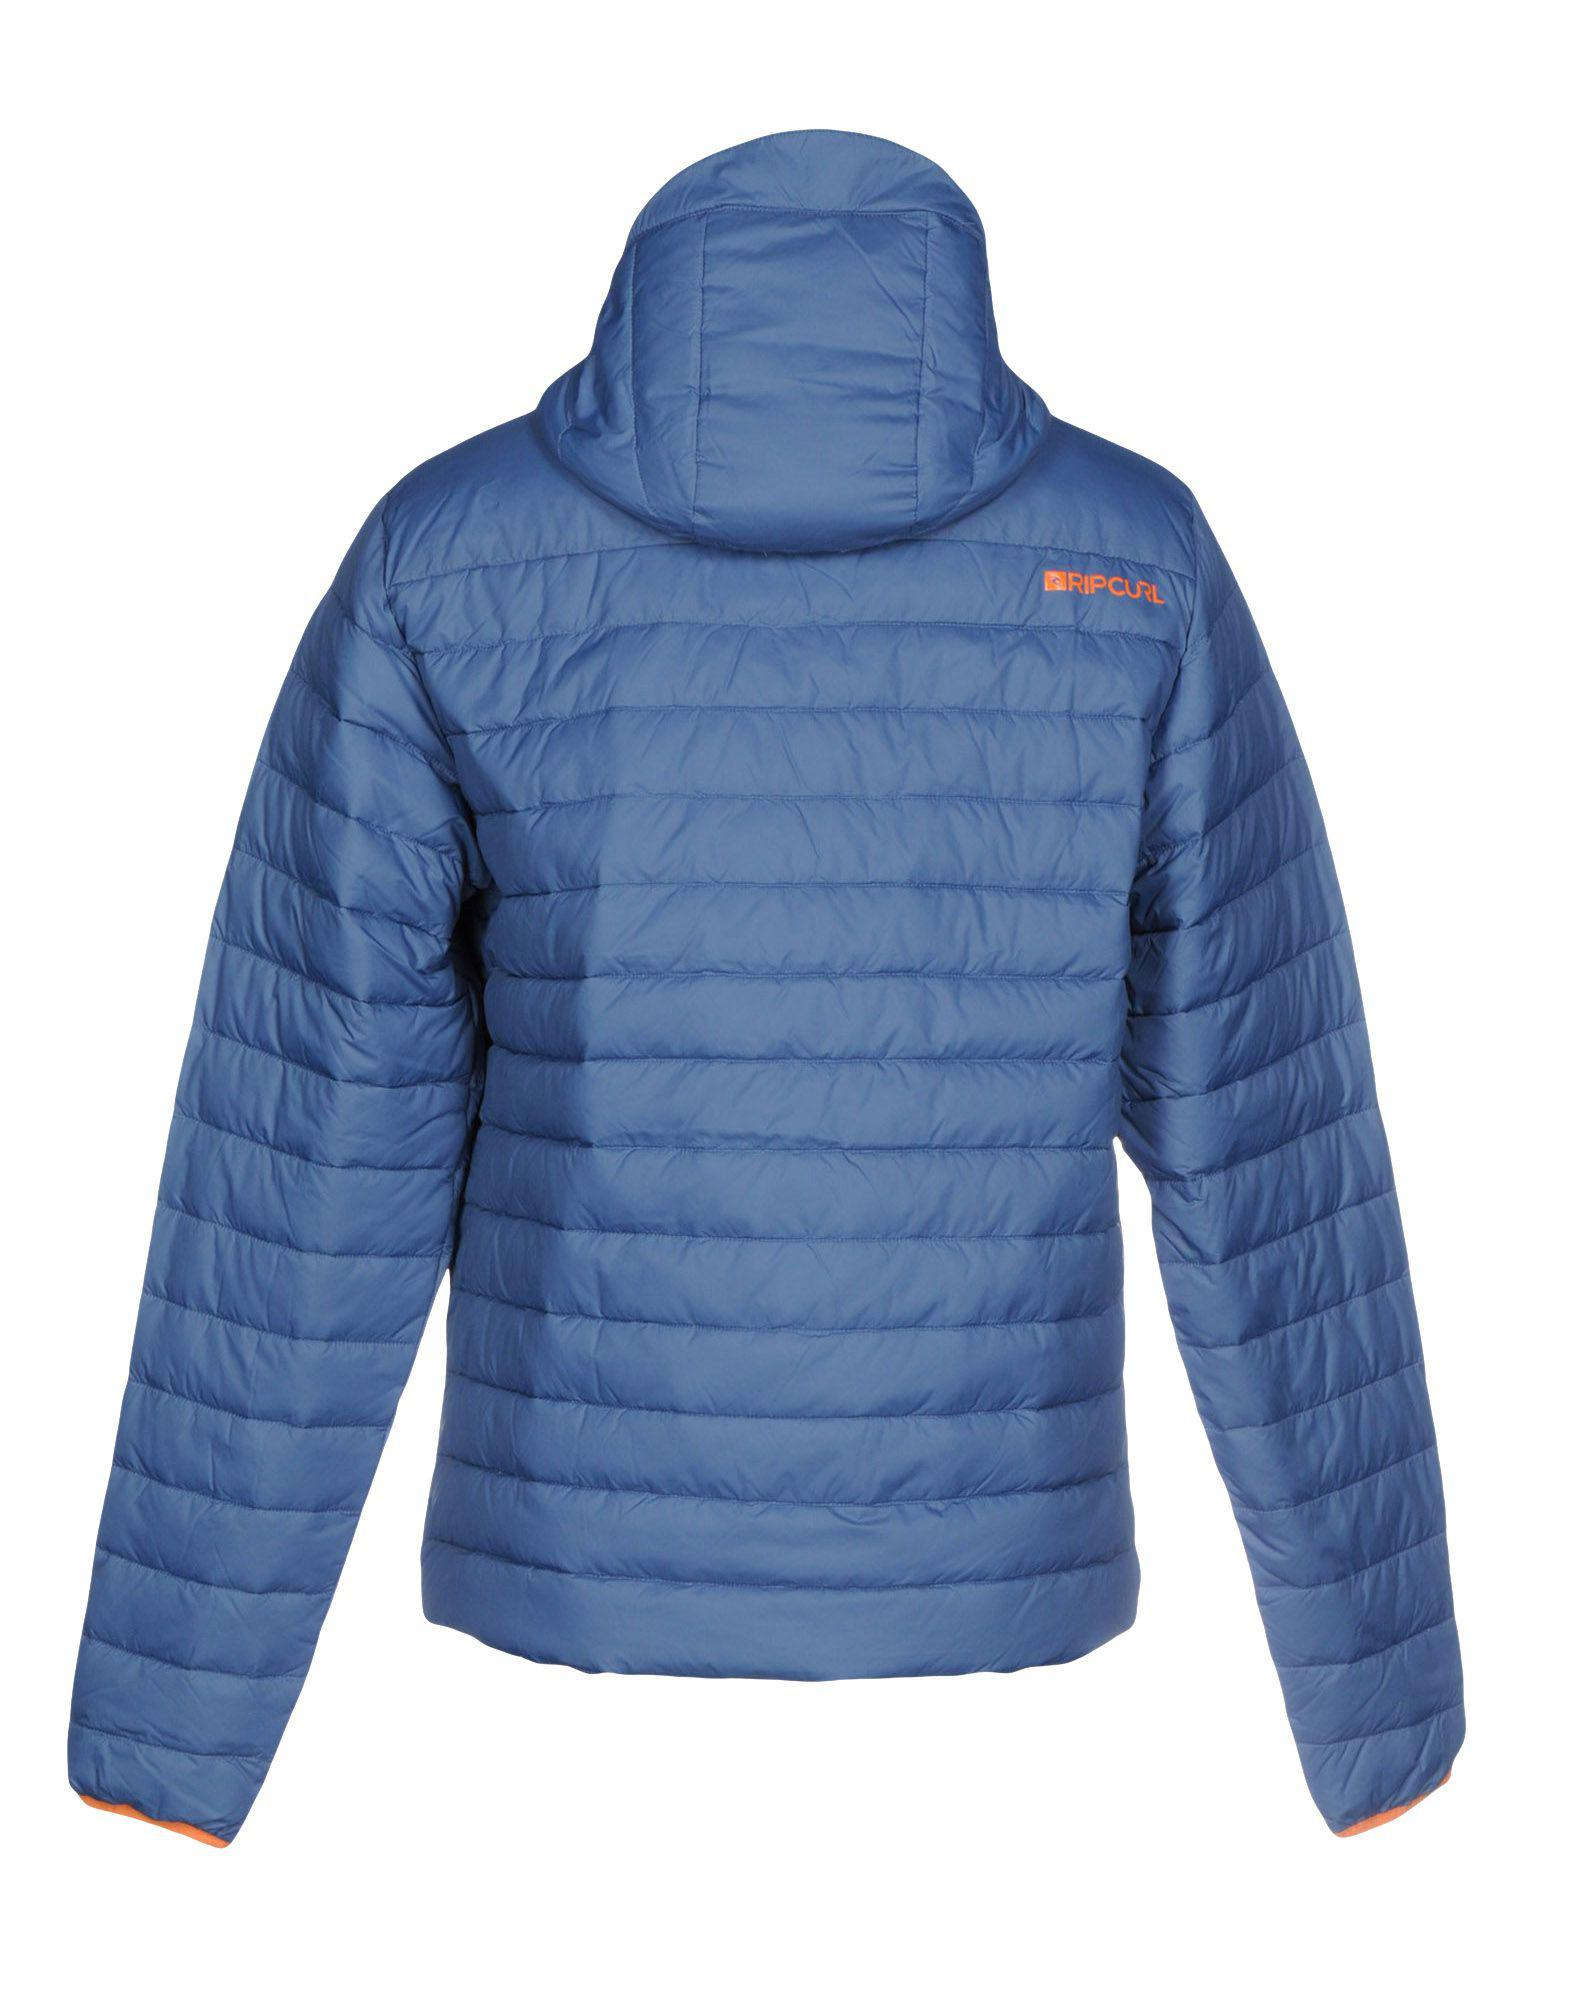 Rip Curl Goose Down Jacket in Blue for Men